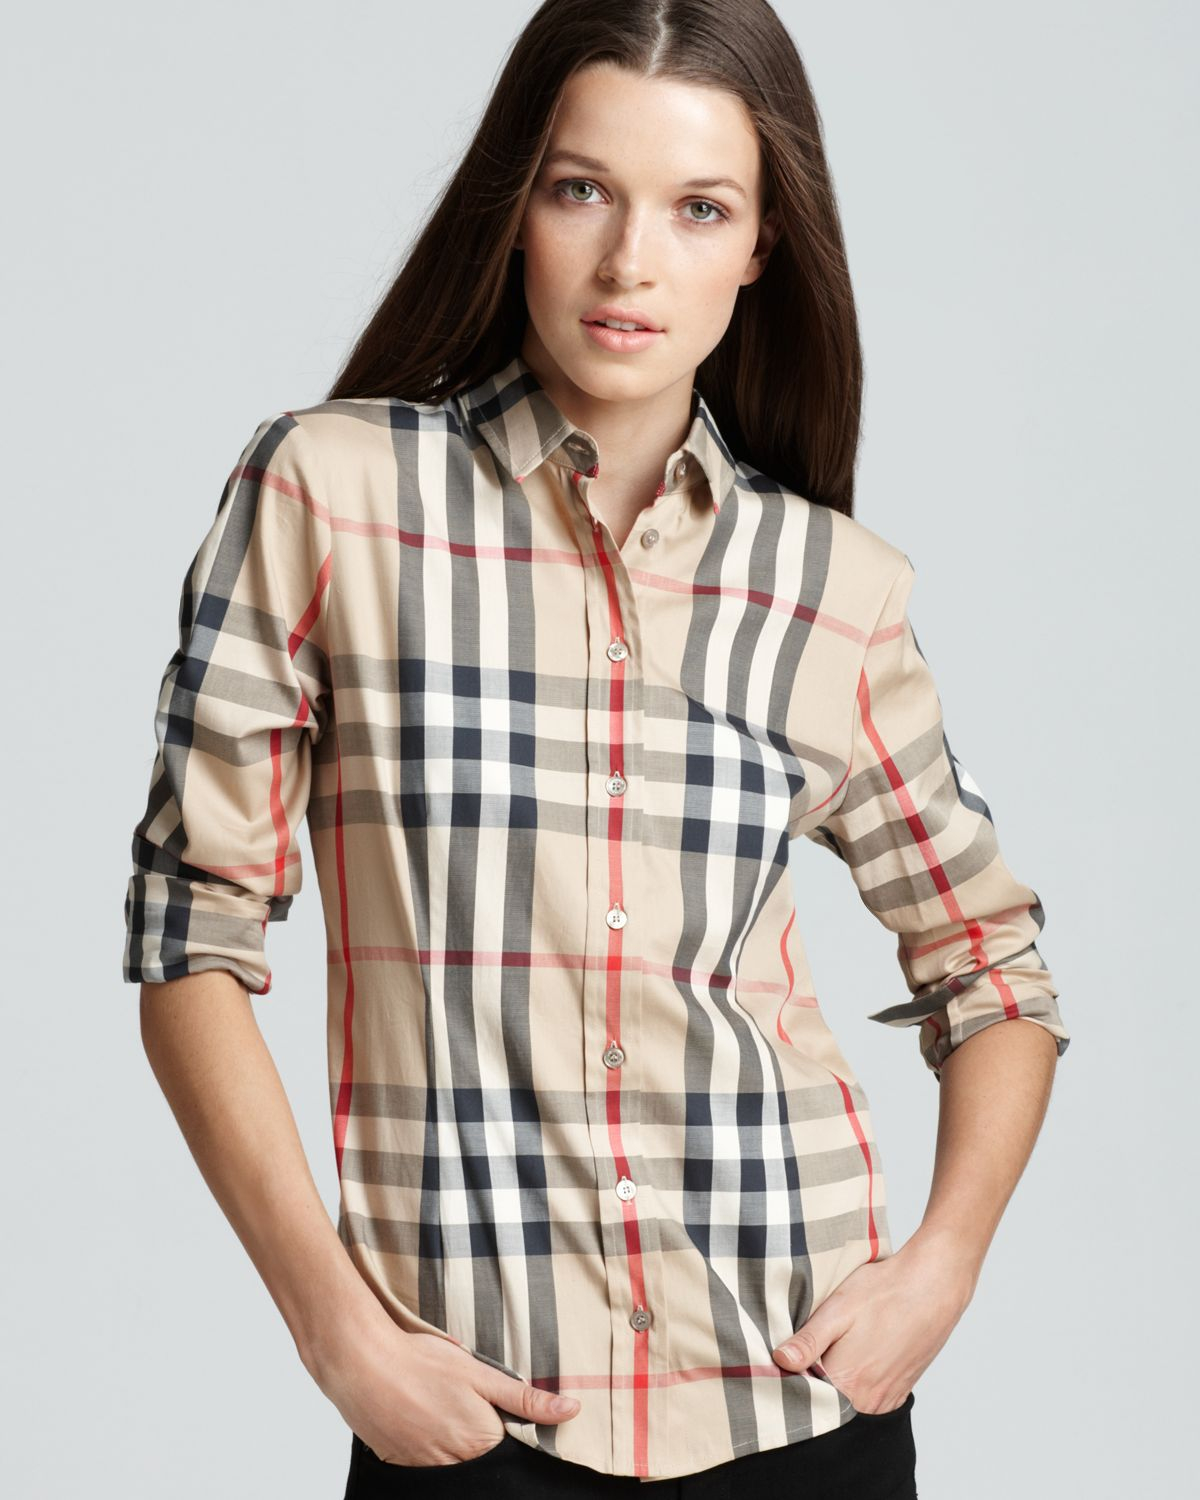 c8cb82a154307f Lyst - Burberry Woven Exploded Check Shirt in Natural